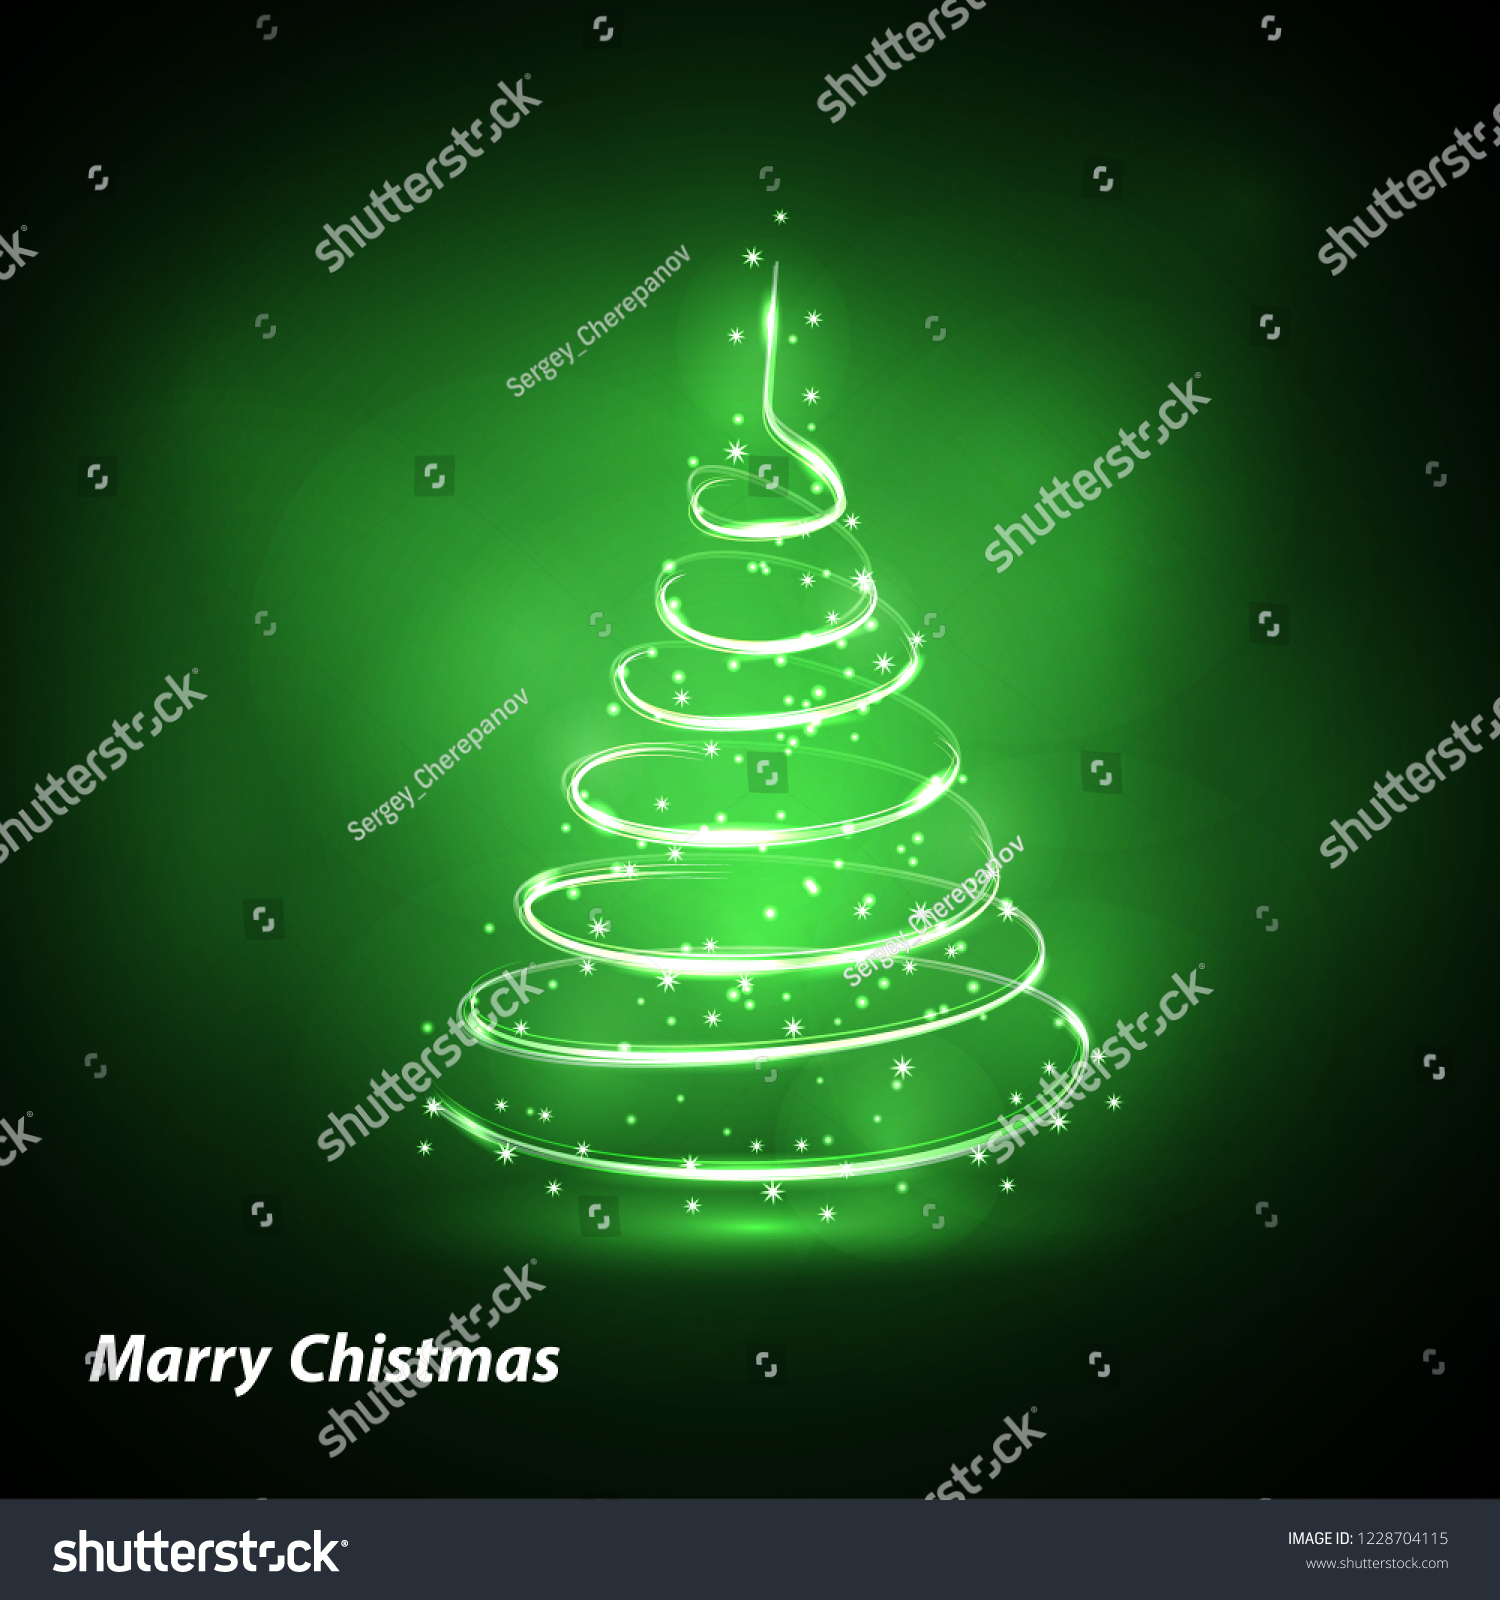 christmas tree on transparent background gold stock vector royalty free 1228704115 https www shutterstock com image vector christmas tree on transparent background gold 1228704115